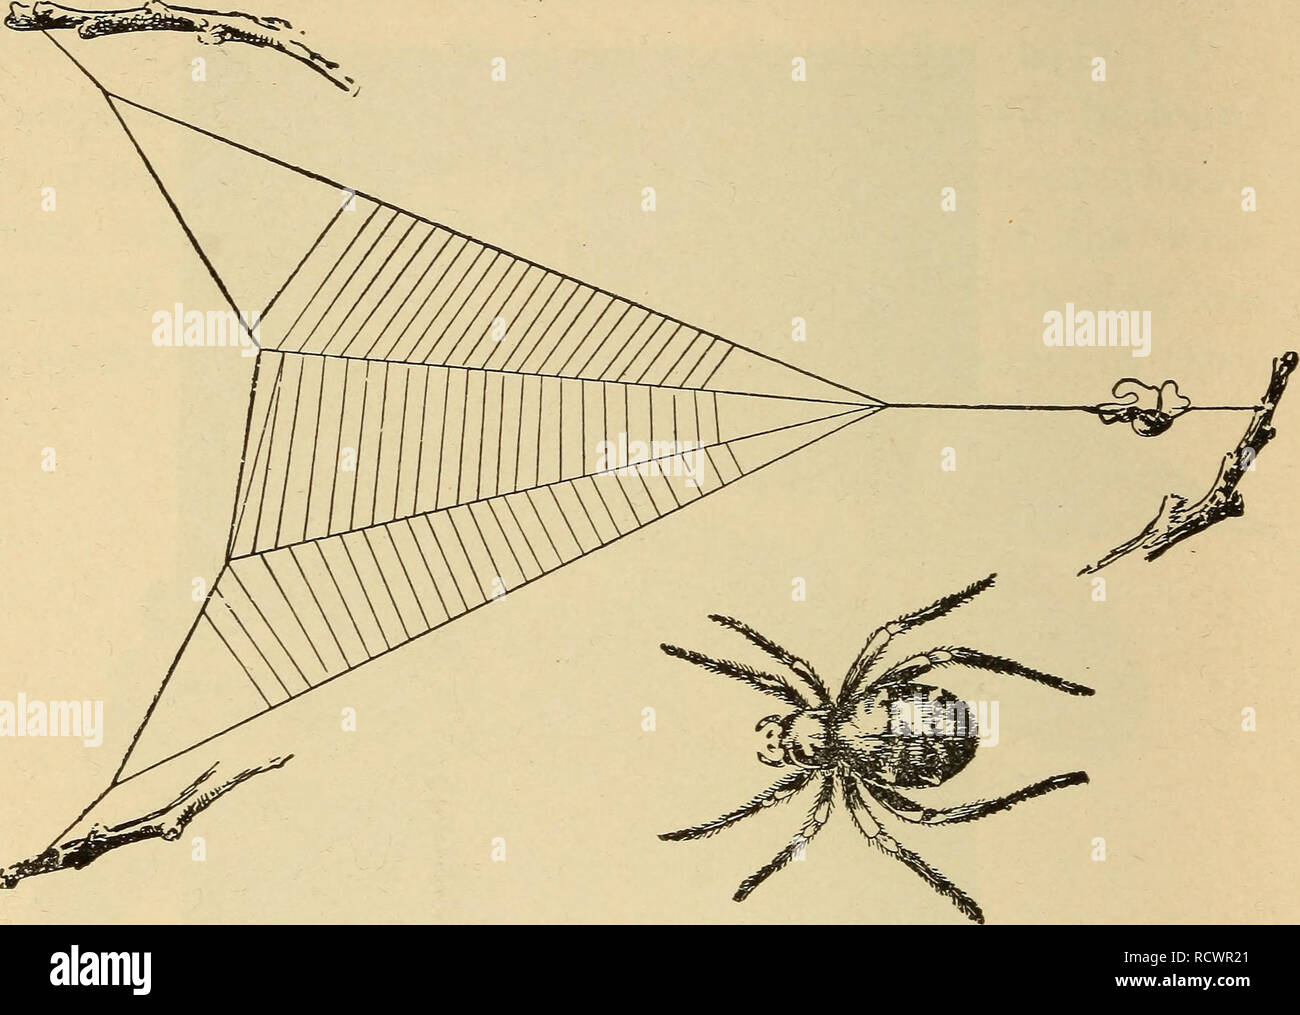 . Elementary zoology. Zoology. 238 ELEMENTARY ZOOLOGY a good field for independent observation and study by the student.. Fi-G. 102.—The triangle spider, Hyptiotes sp. (California), with its web; the spider rests on the taut guy-line, with a loop of the line held between its fore and hind legs; when an insect gets into the web the spider loosens the hold of its hind feet on the guy-line, thus allowing the web to spring forward sharply and further entangle the prey. (From Jenkins and Kellogg.). Please note that these images are extracted from scanned page images that may have been digitally enh - Stock Image